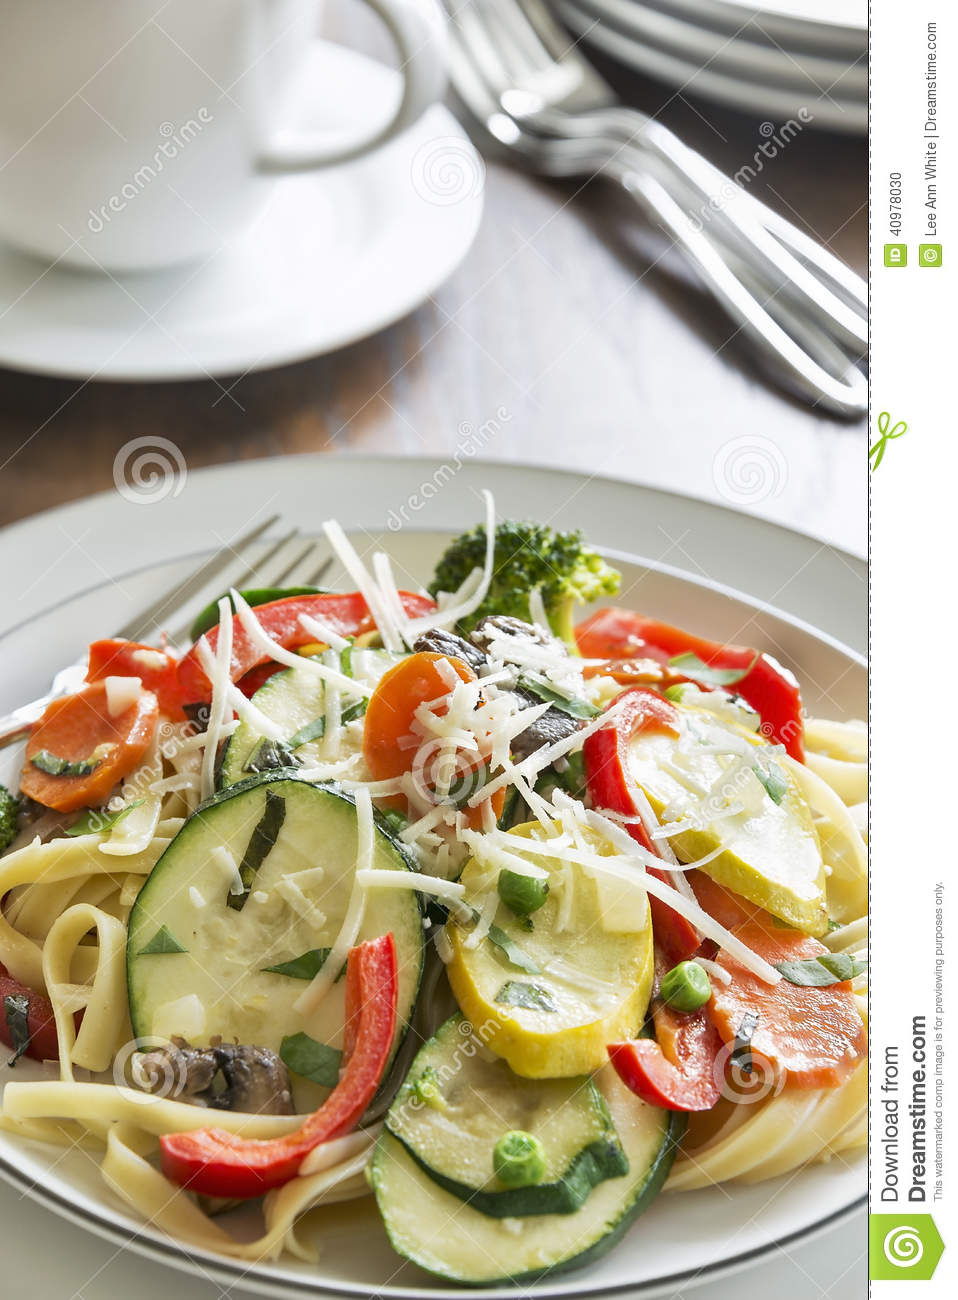 primavera de p tes avec des l gumes de fettuccine et de jardin photo stock image 40978030. Black Bedroom Furniture Sets. Home Design Ideas